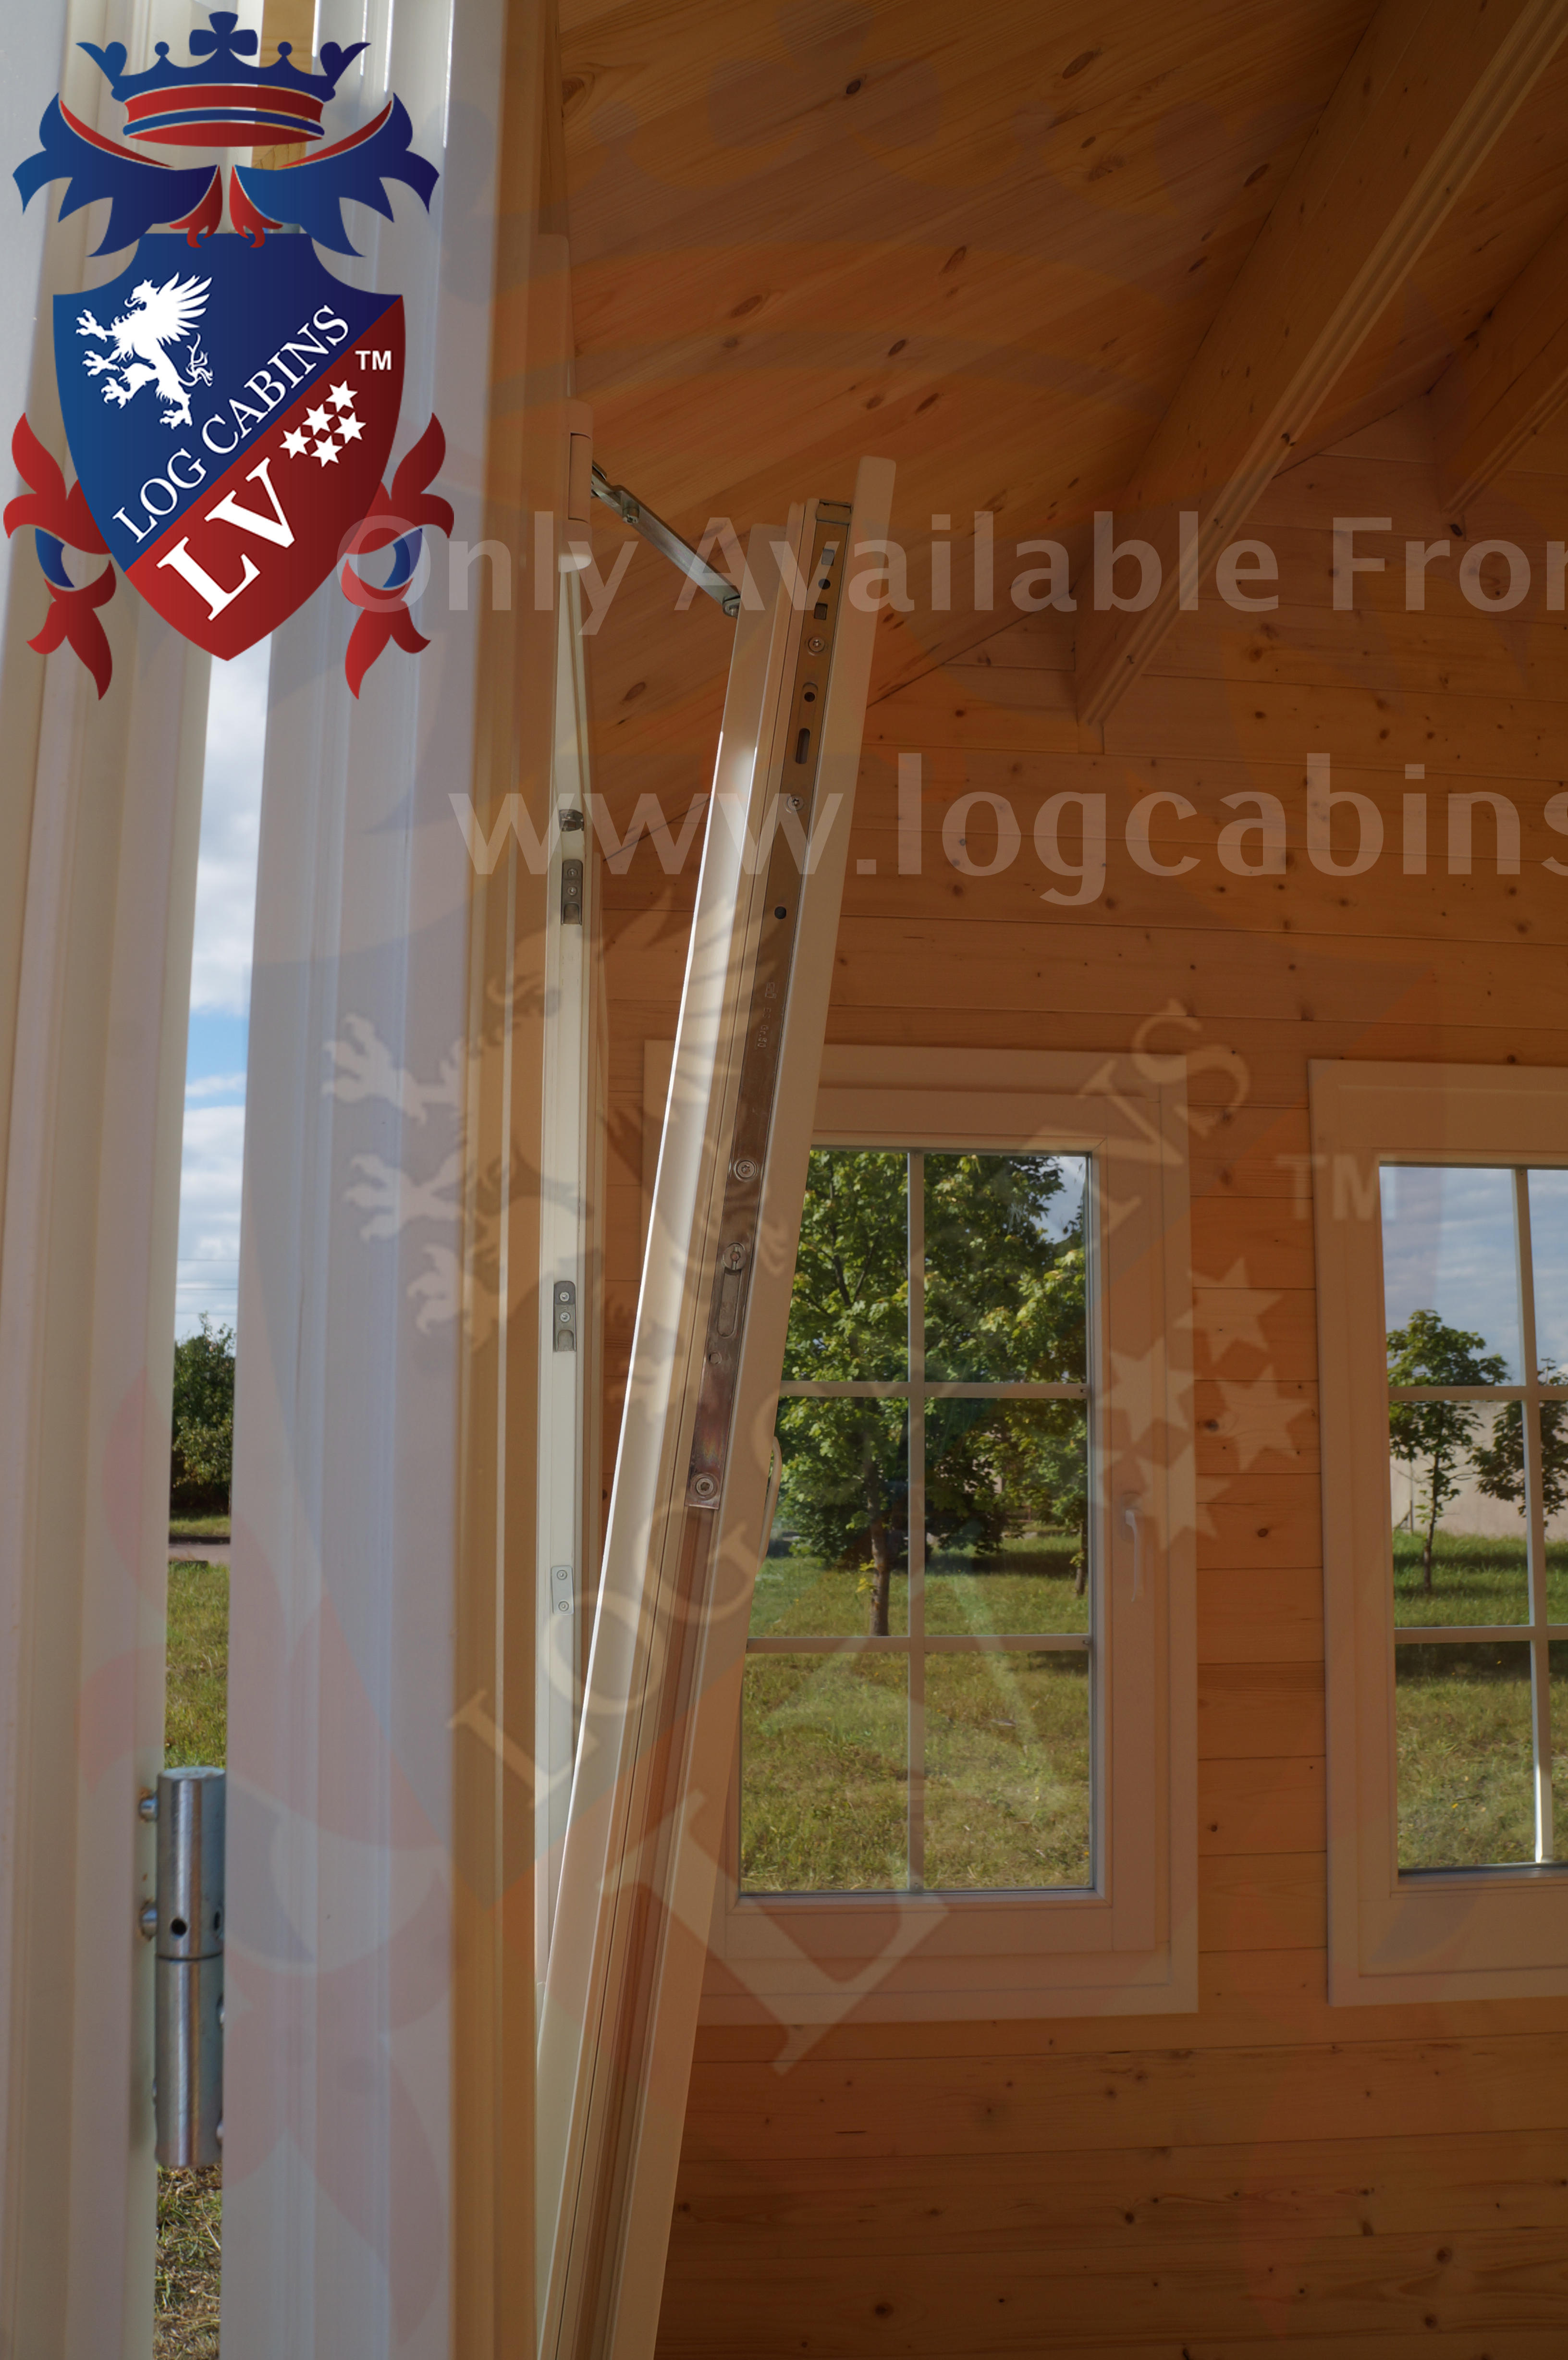 residential windows and doors quality windows log cabins 15